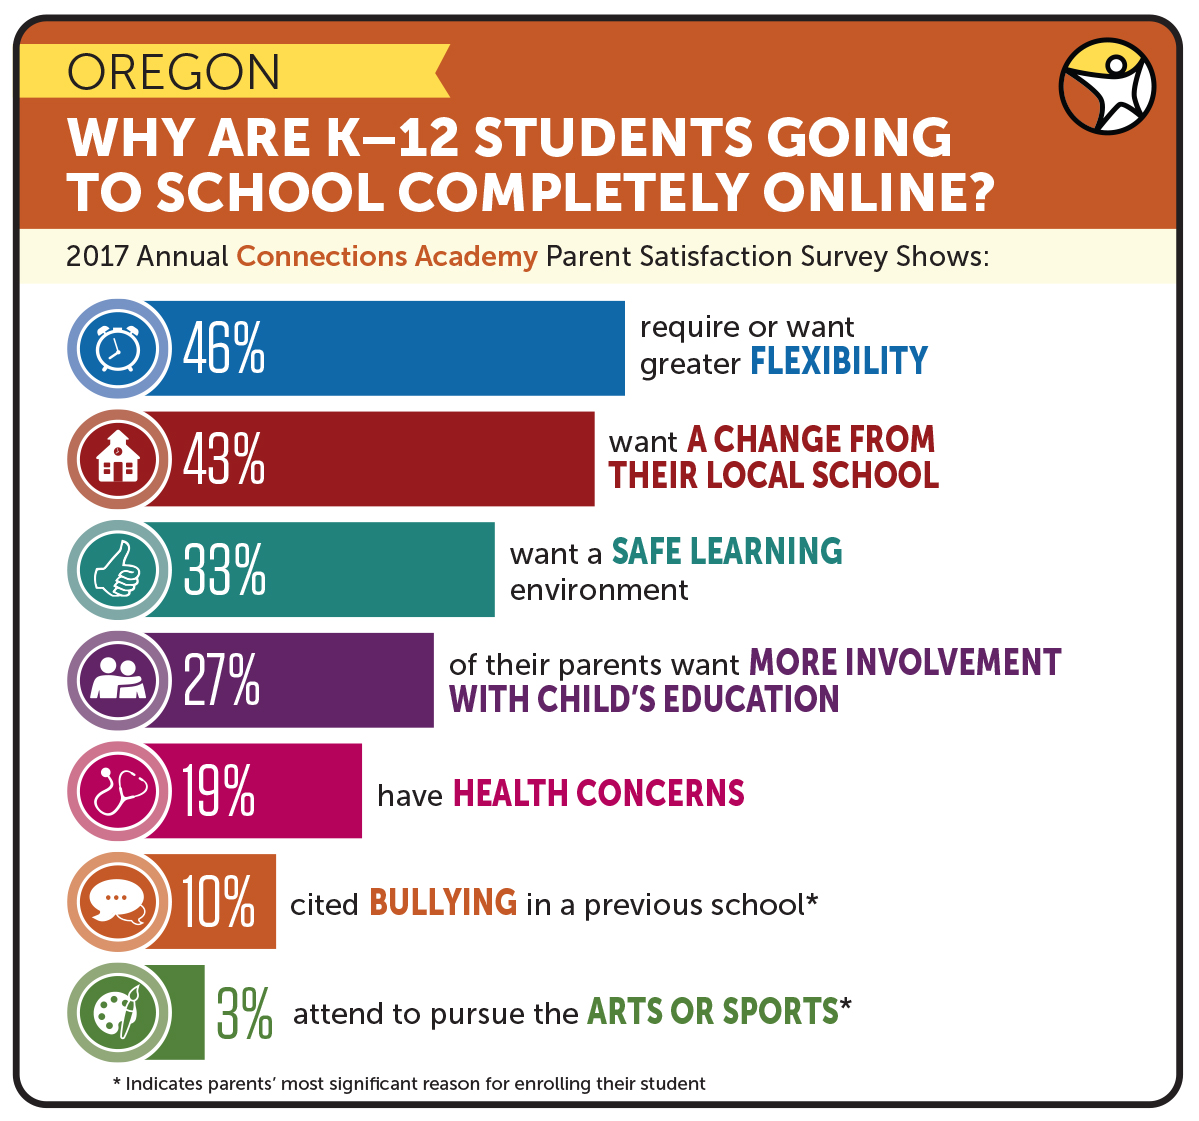 Results of Parent Survey Show Why K-12 Students Attend Full Time